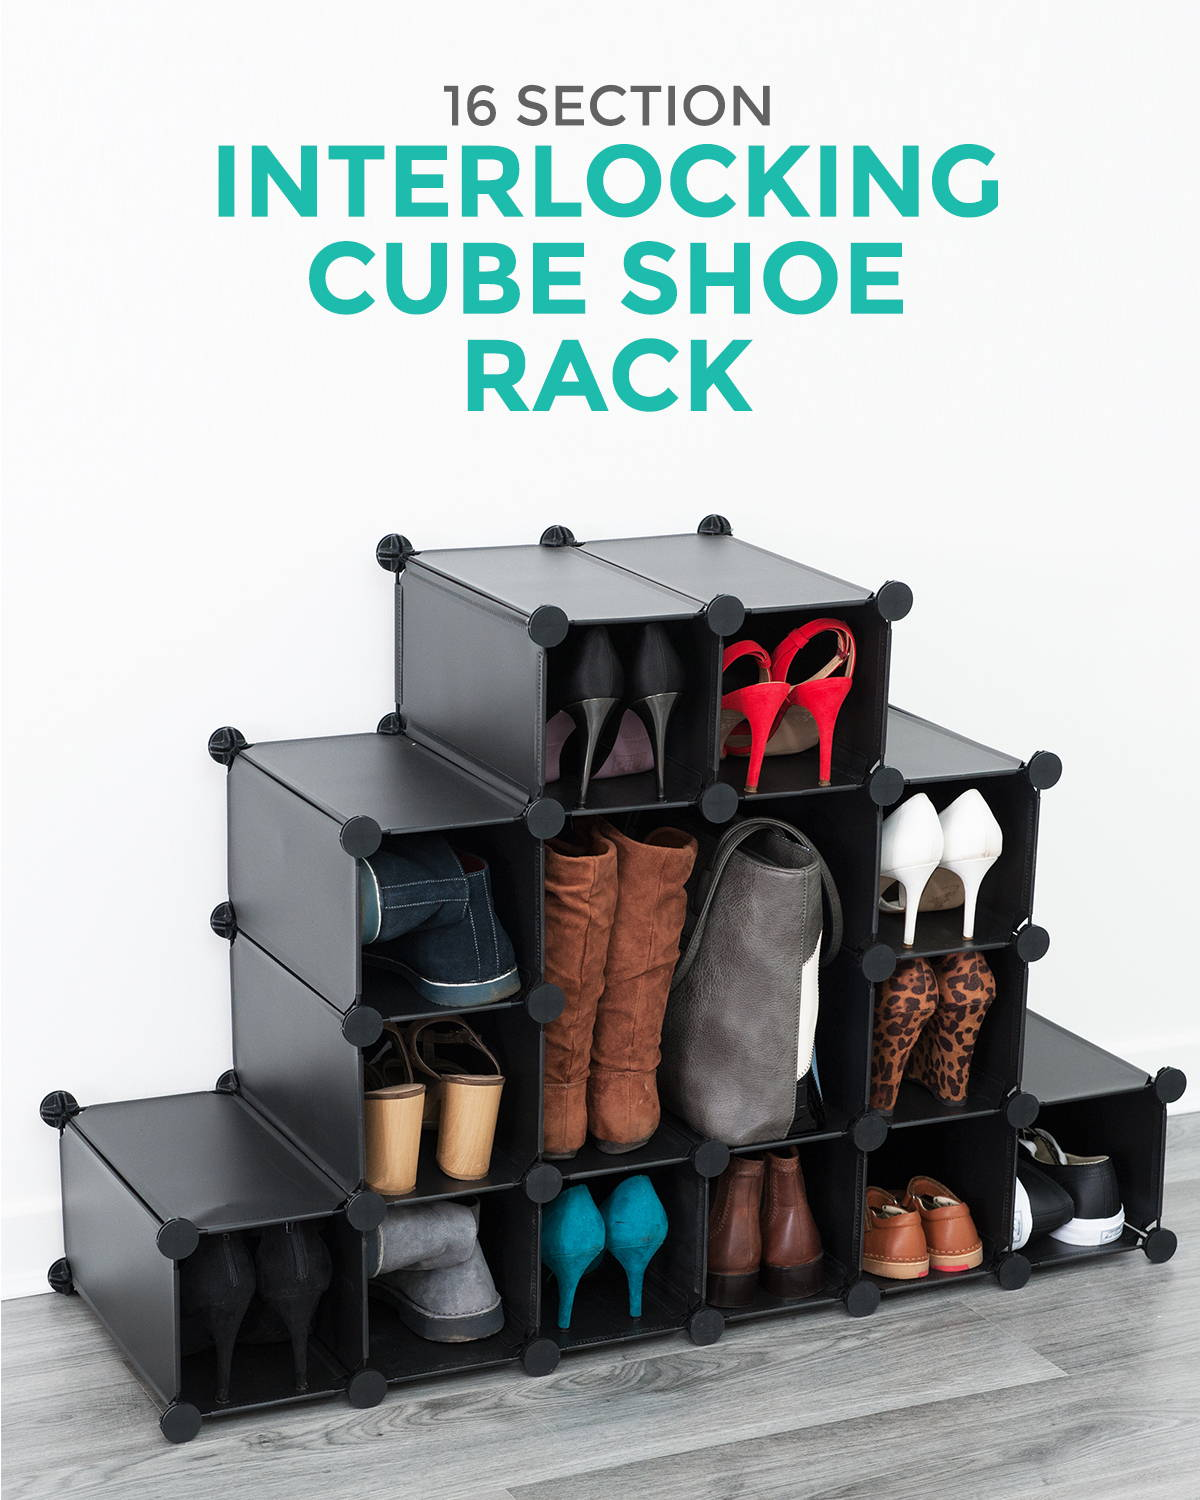 Interlocking Cube Shoe Rack